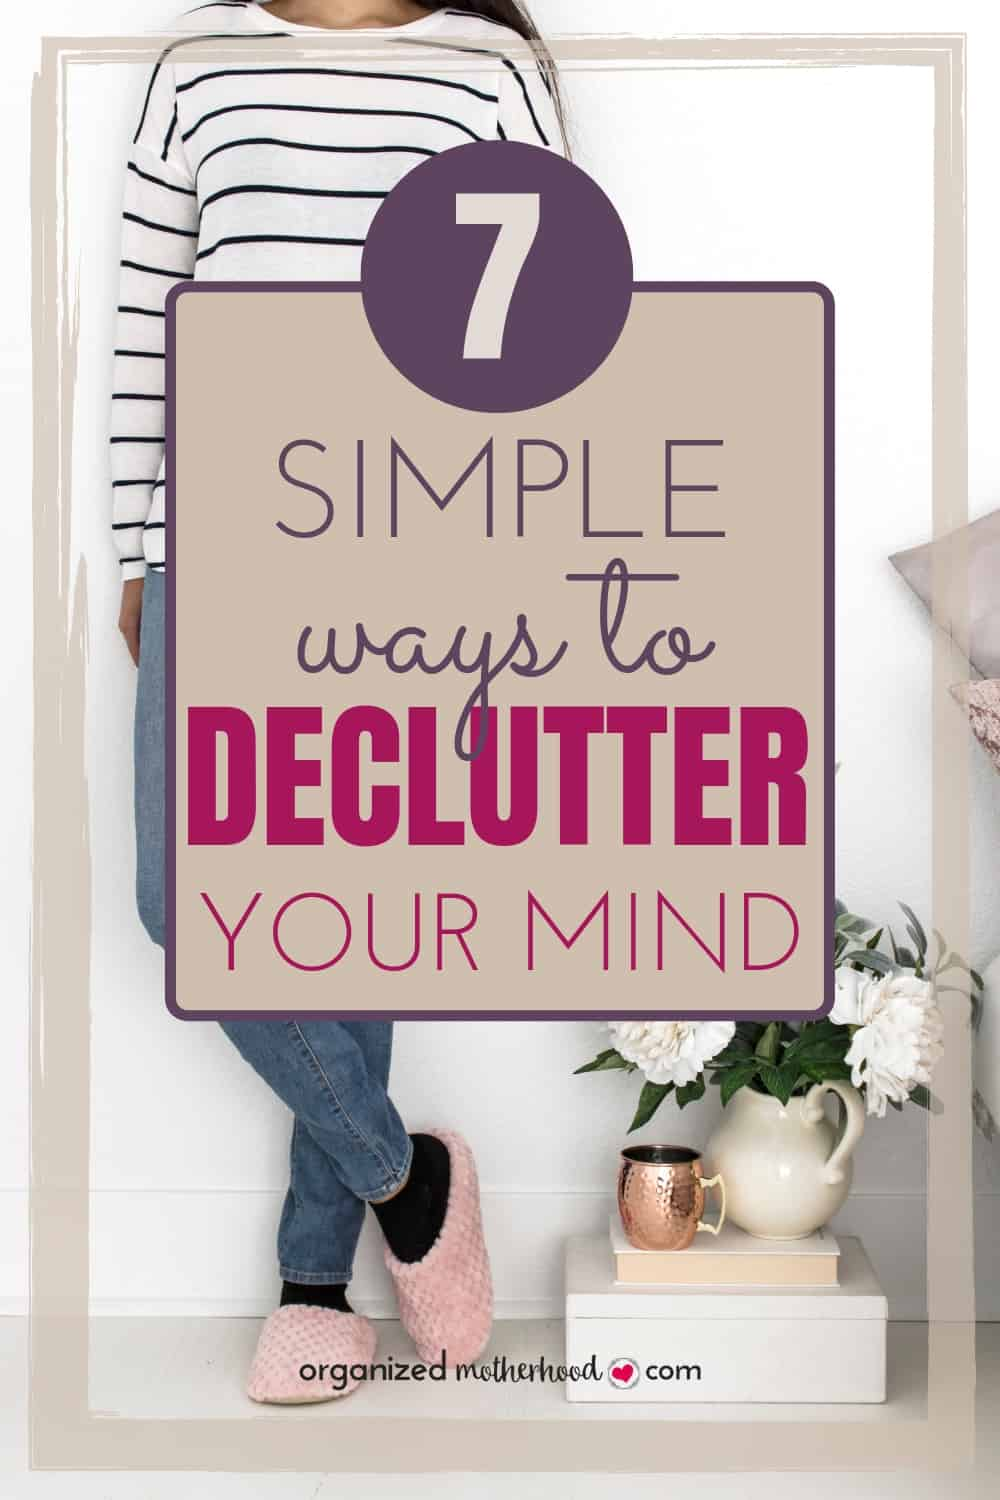 Declutter your mind with these 7 simple tips. These ideas will help you get organized and focused while getting rid of stress. #declutter #declutteryourmind